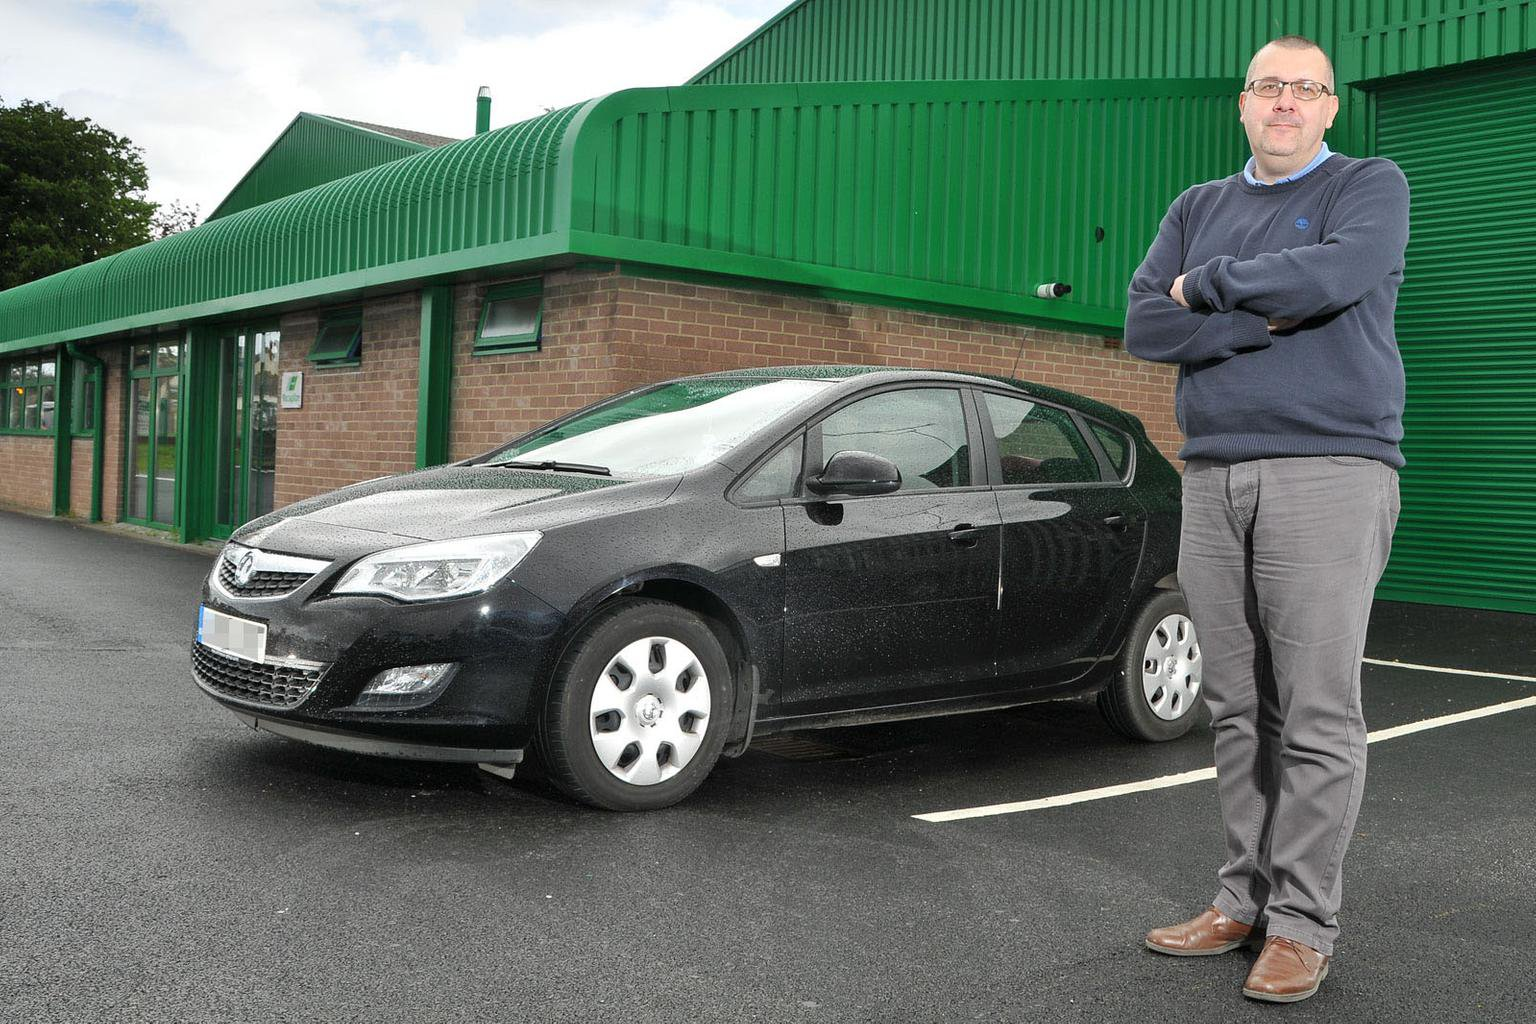 Vauxhall Meriva sold with mismatched front bumper